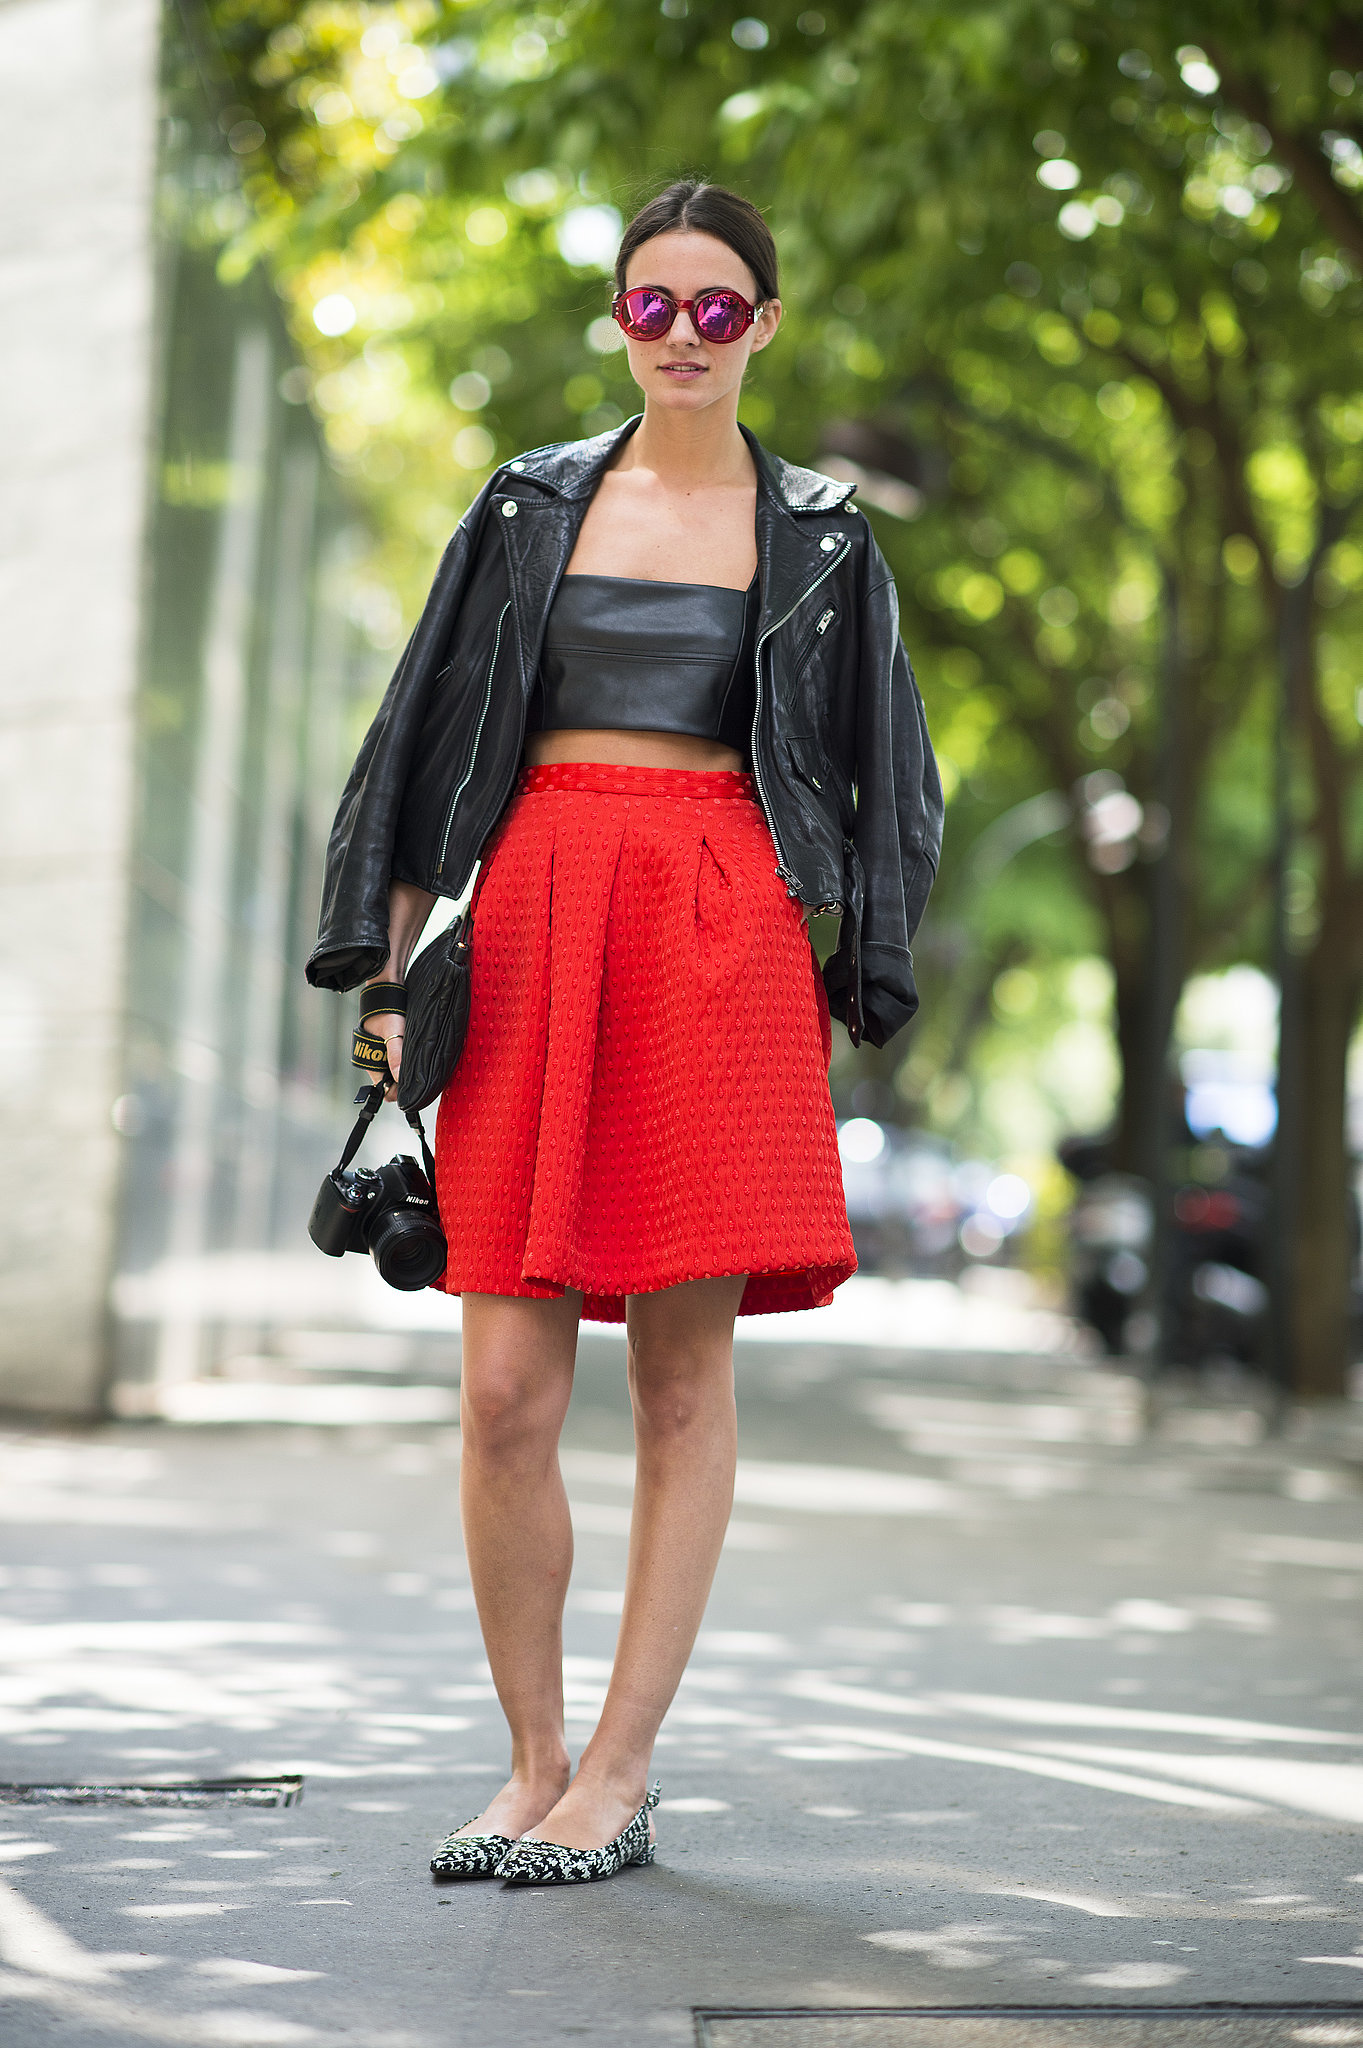 Channel your edgier Summer styling with a little leather to top off a full skirt and flats. Source: Le 21ème | Adam Katz Sinding